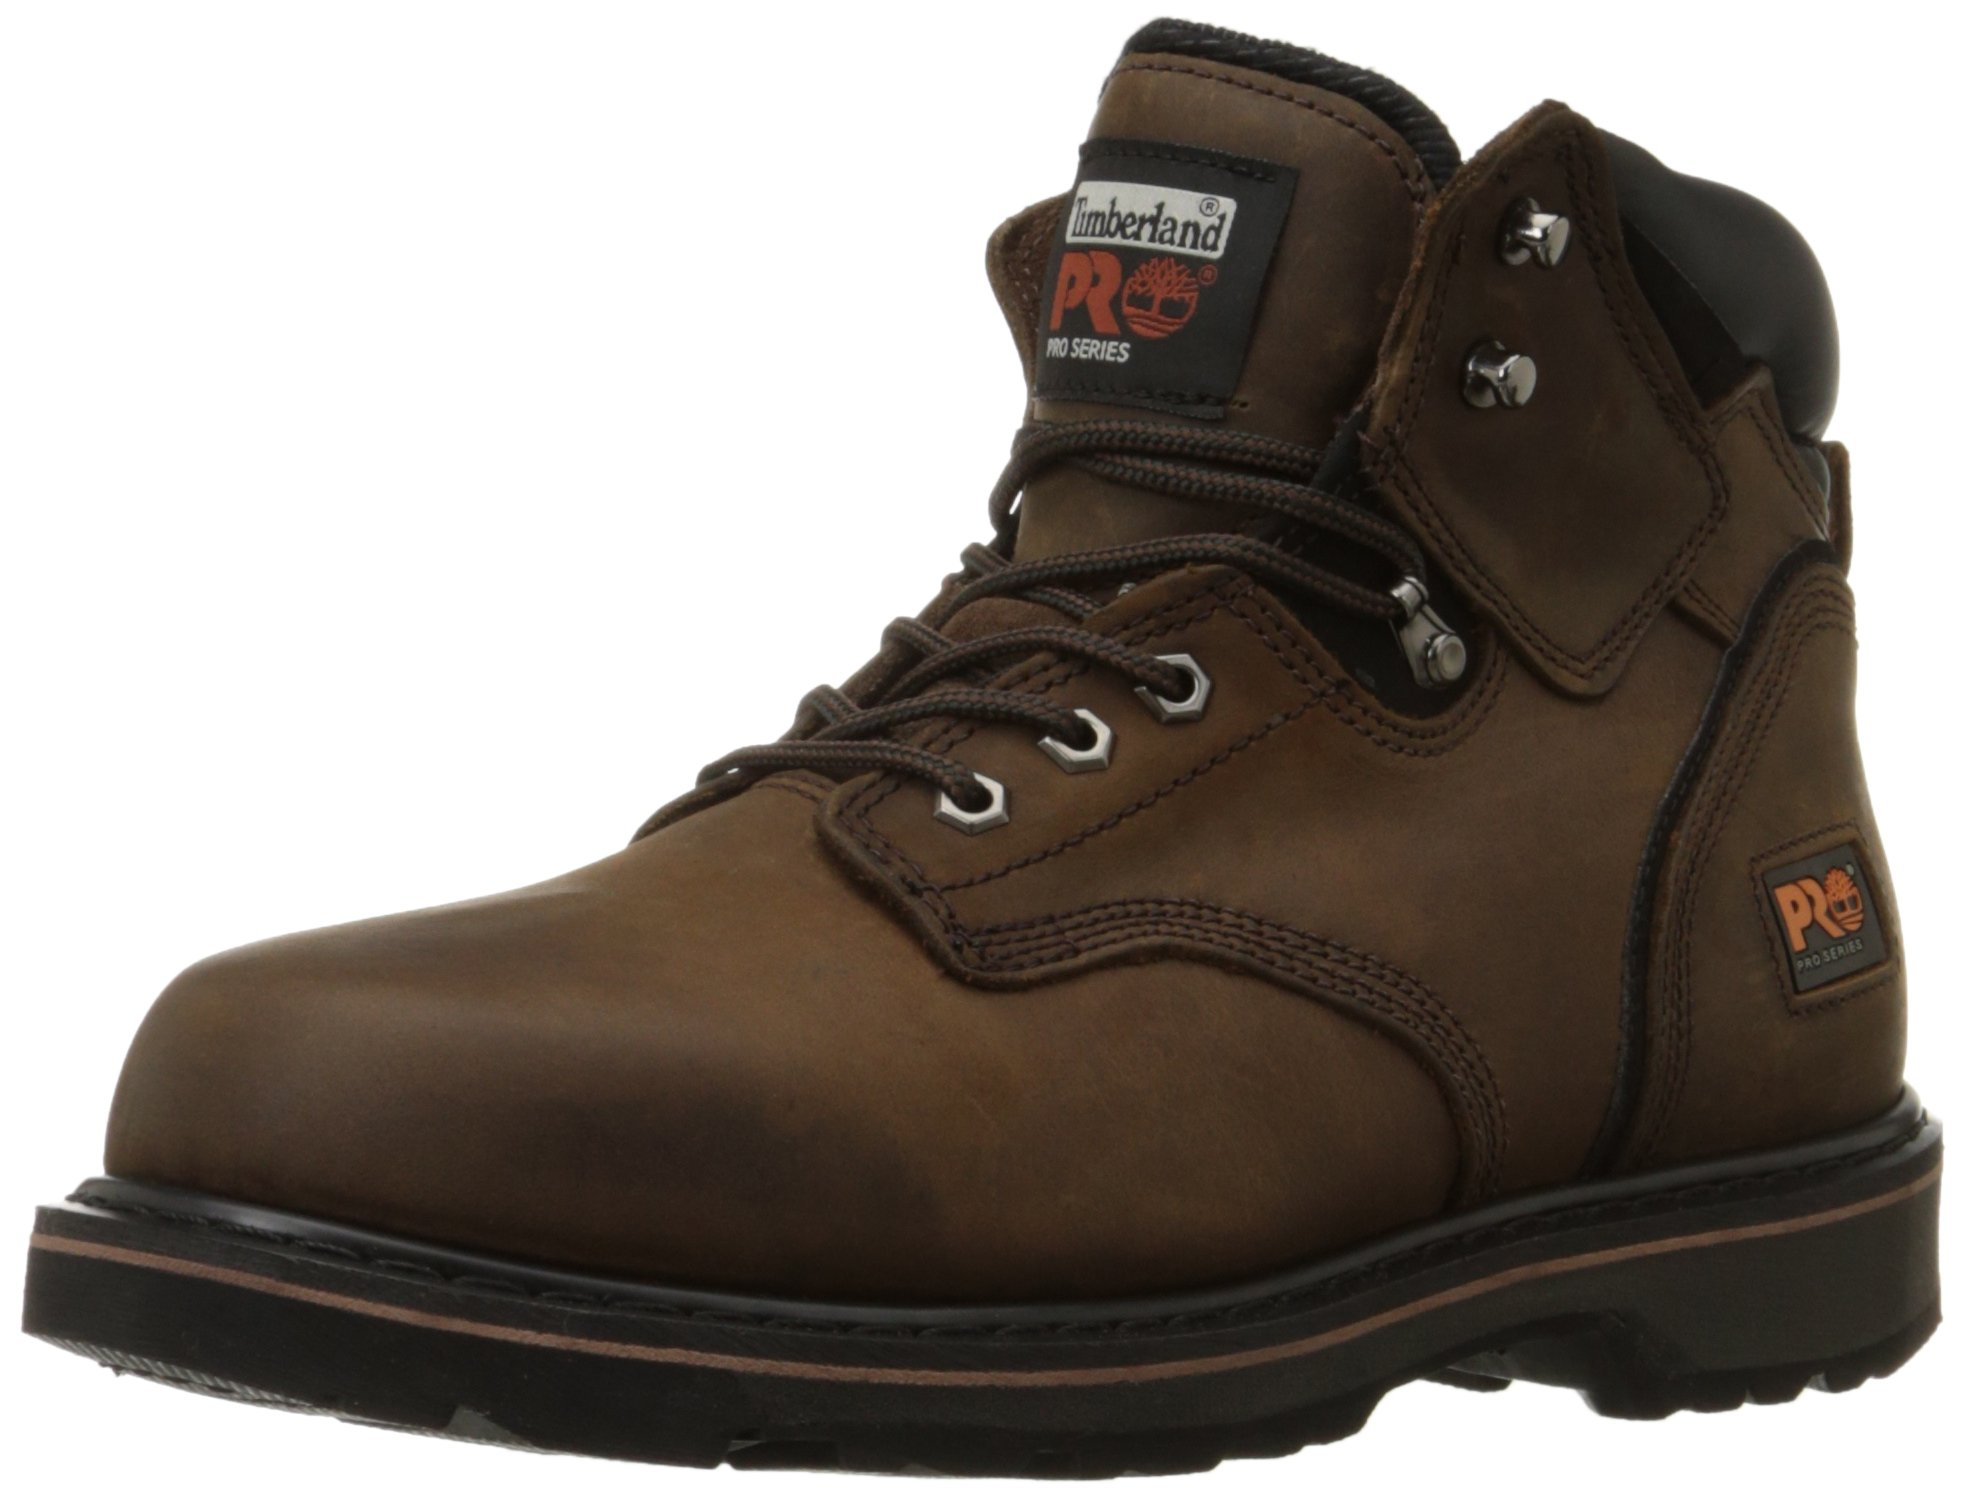 Timberland PRO Men's Pitboss 6'' Soft-Toe Boot,Brown,11.5 W by Timberland PRO